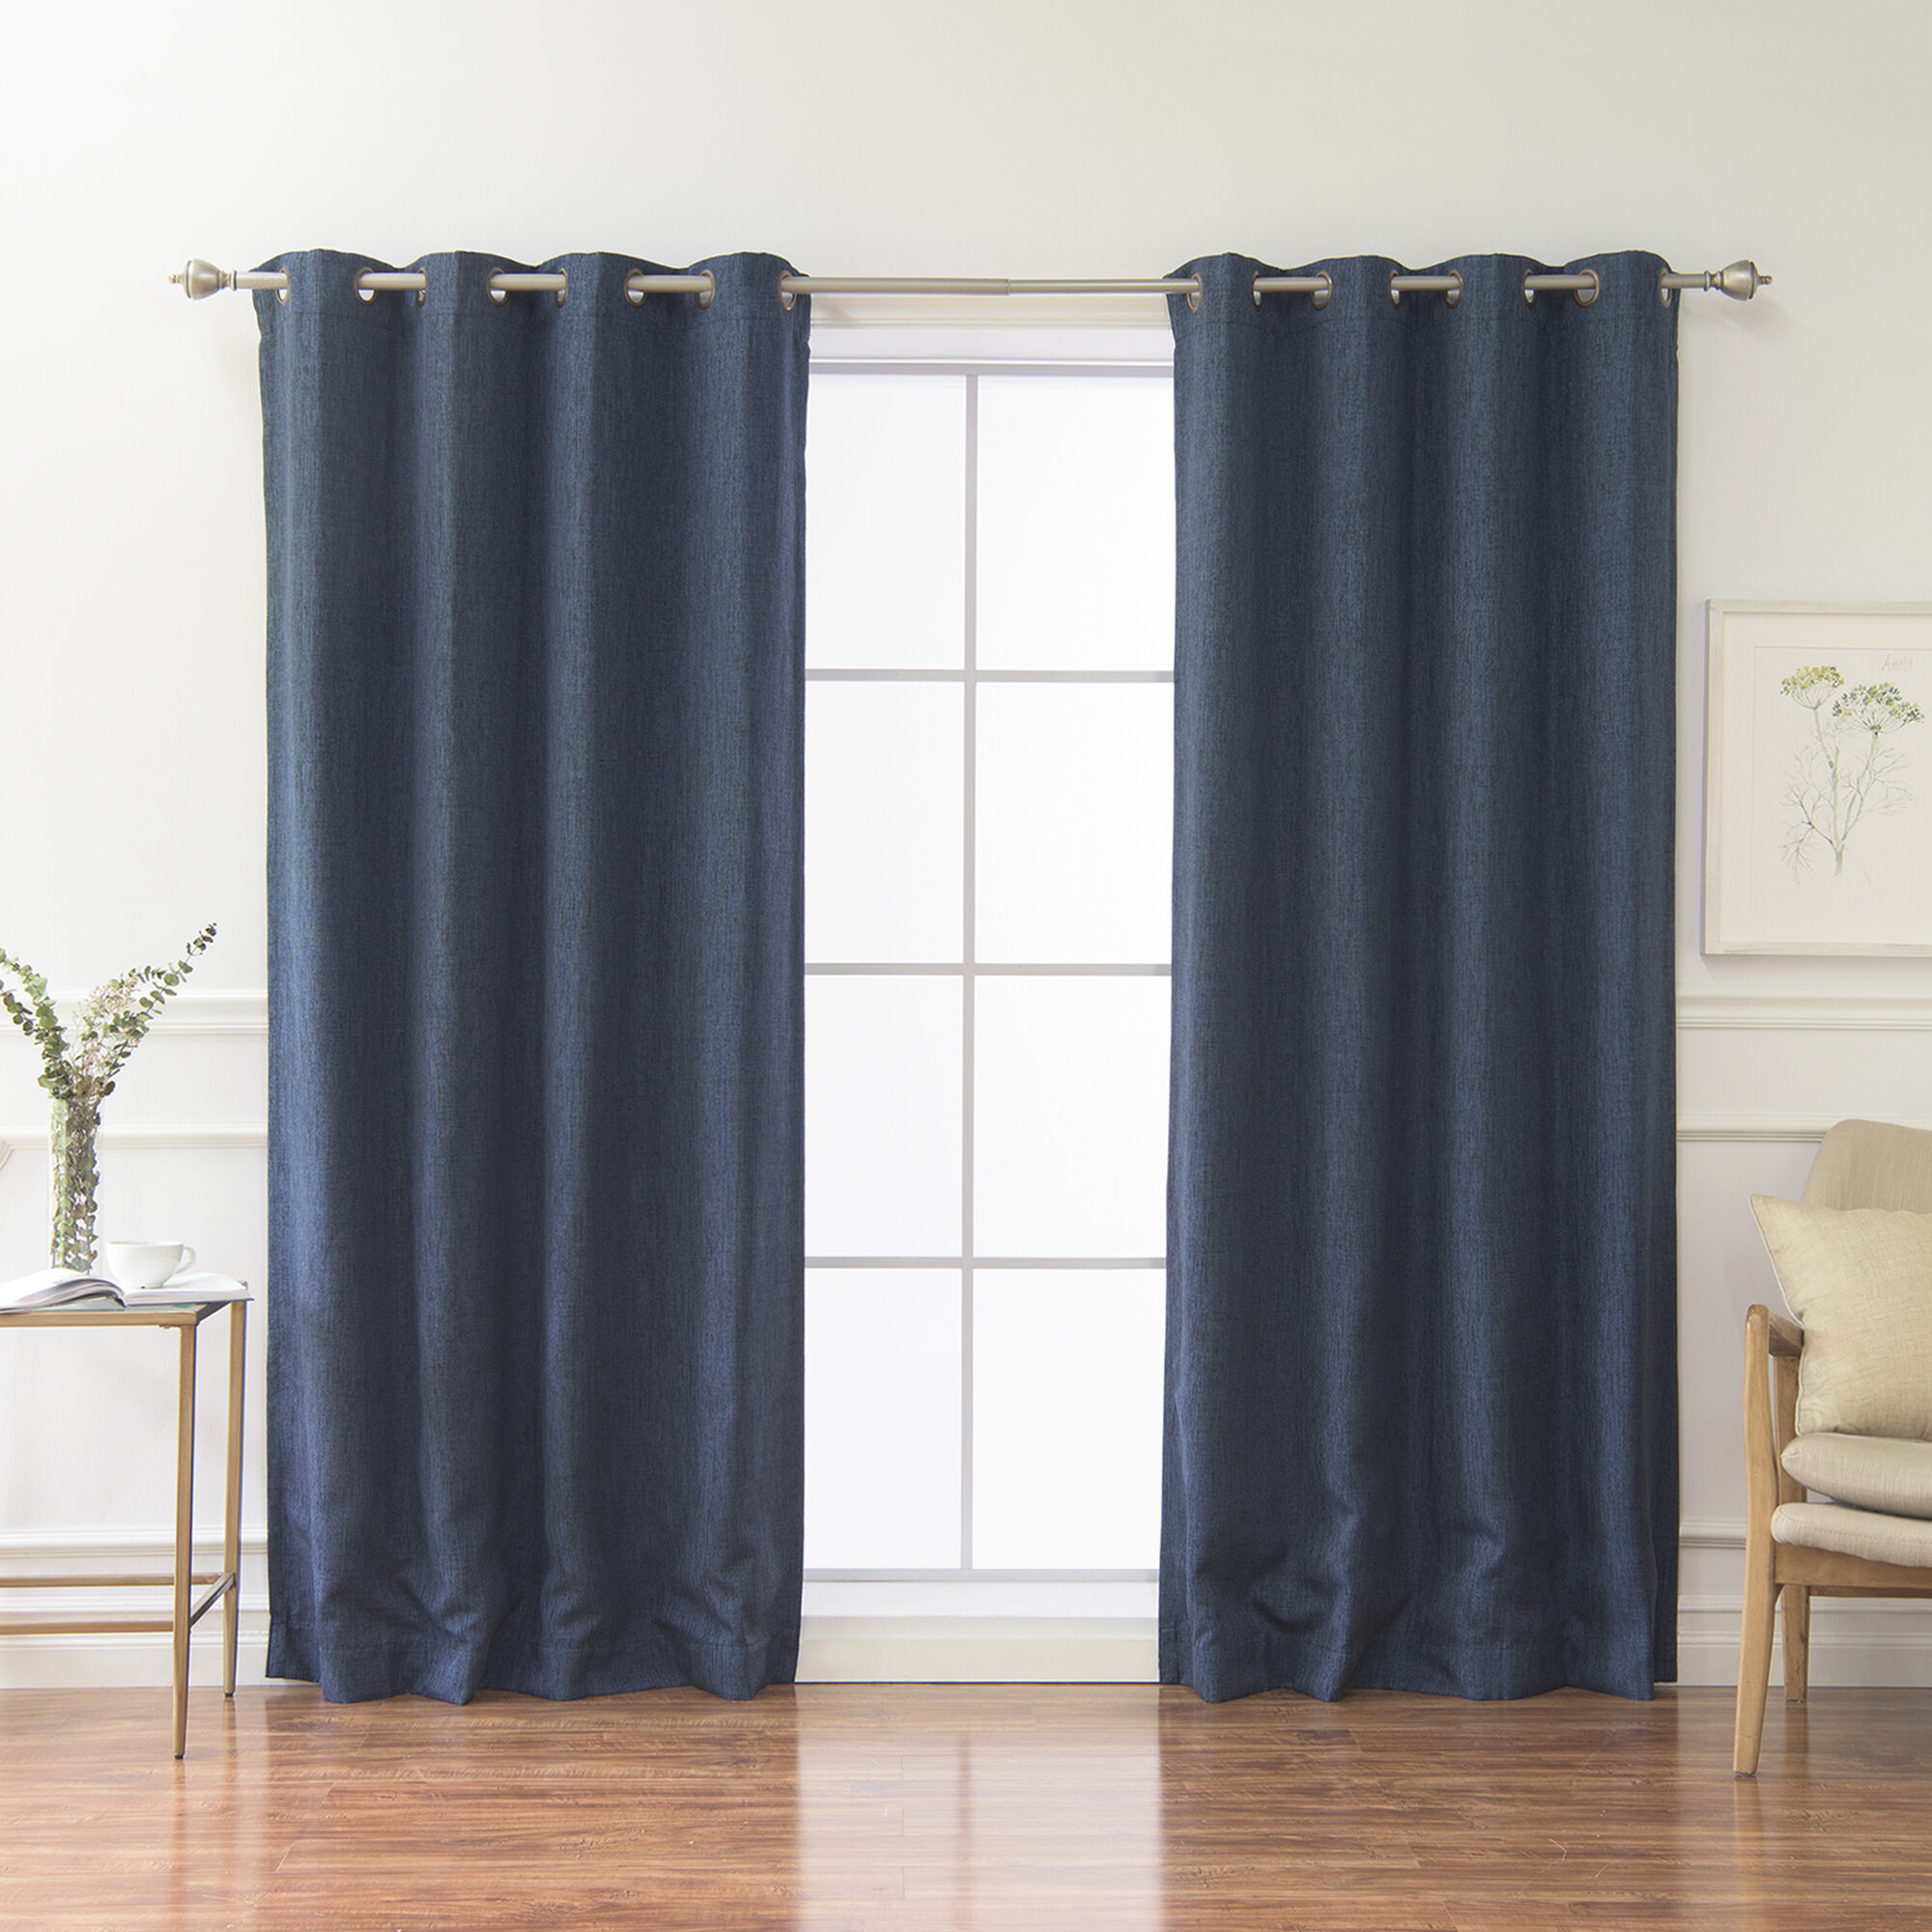 denim buttons t r n shaped pleat curtain pinch u valance a pin drapes c with i